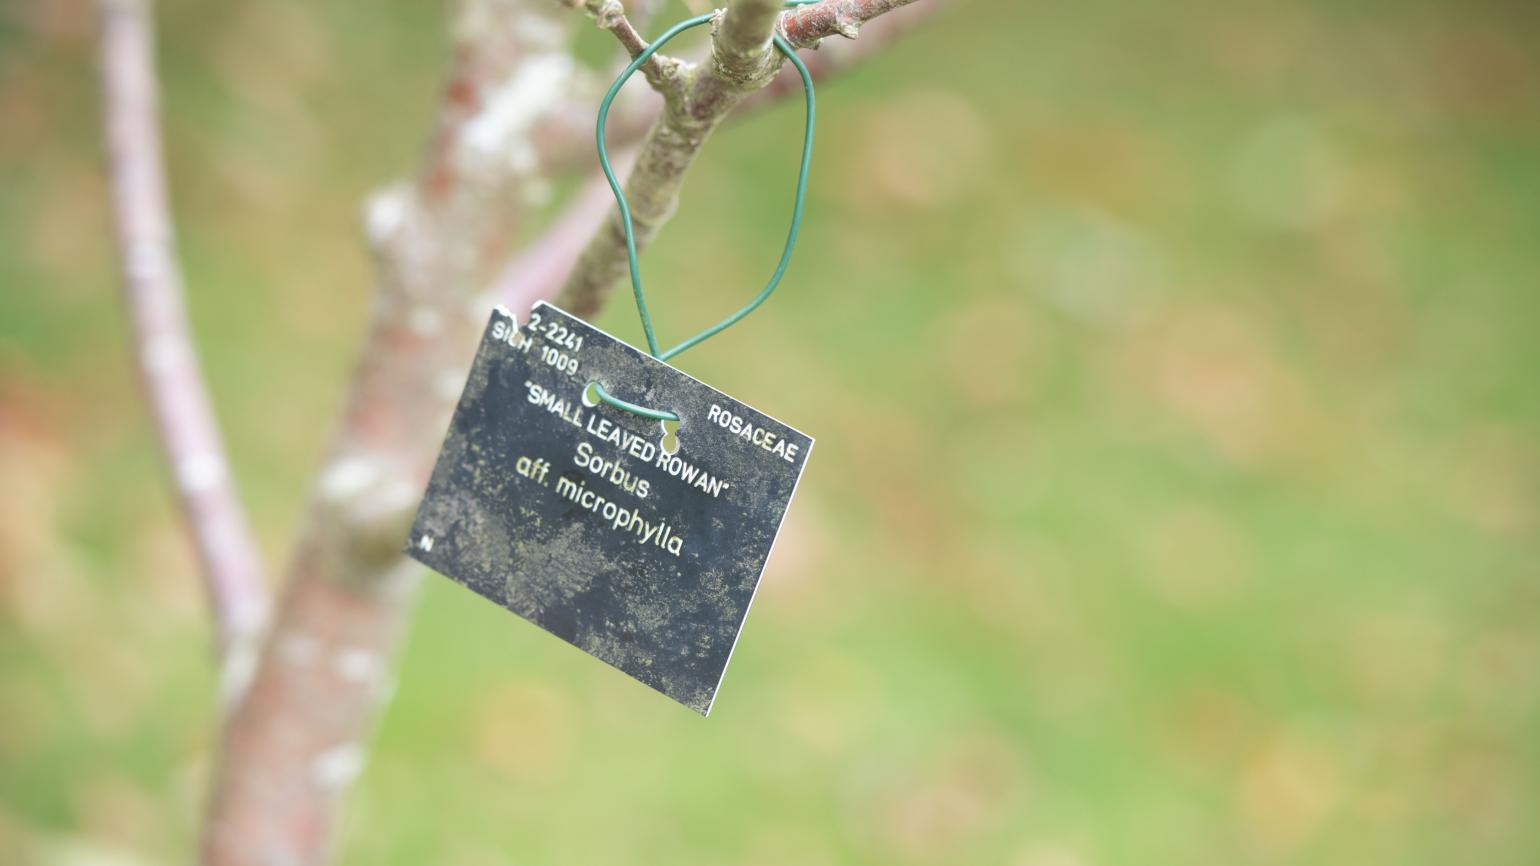 Plant label detail of the 'Small leaved rowan'